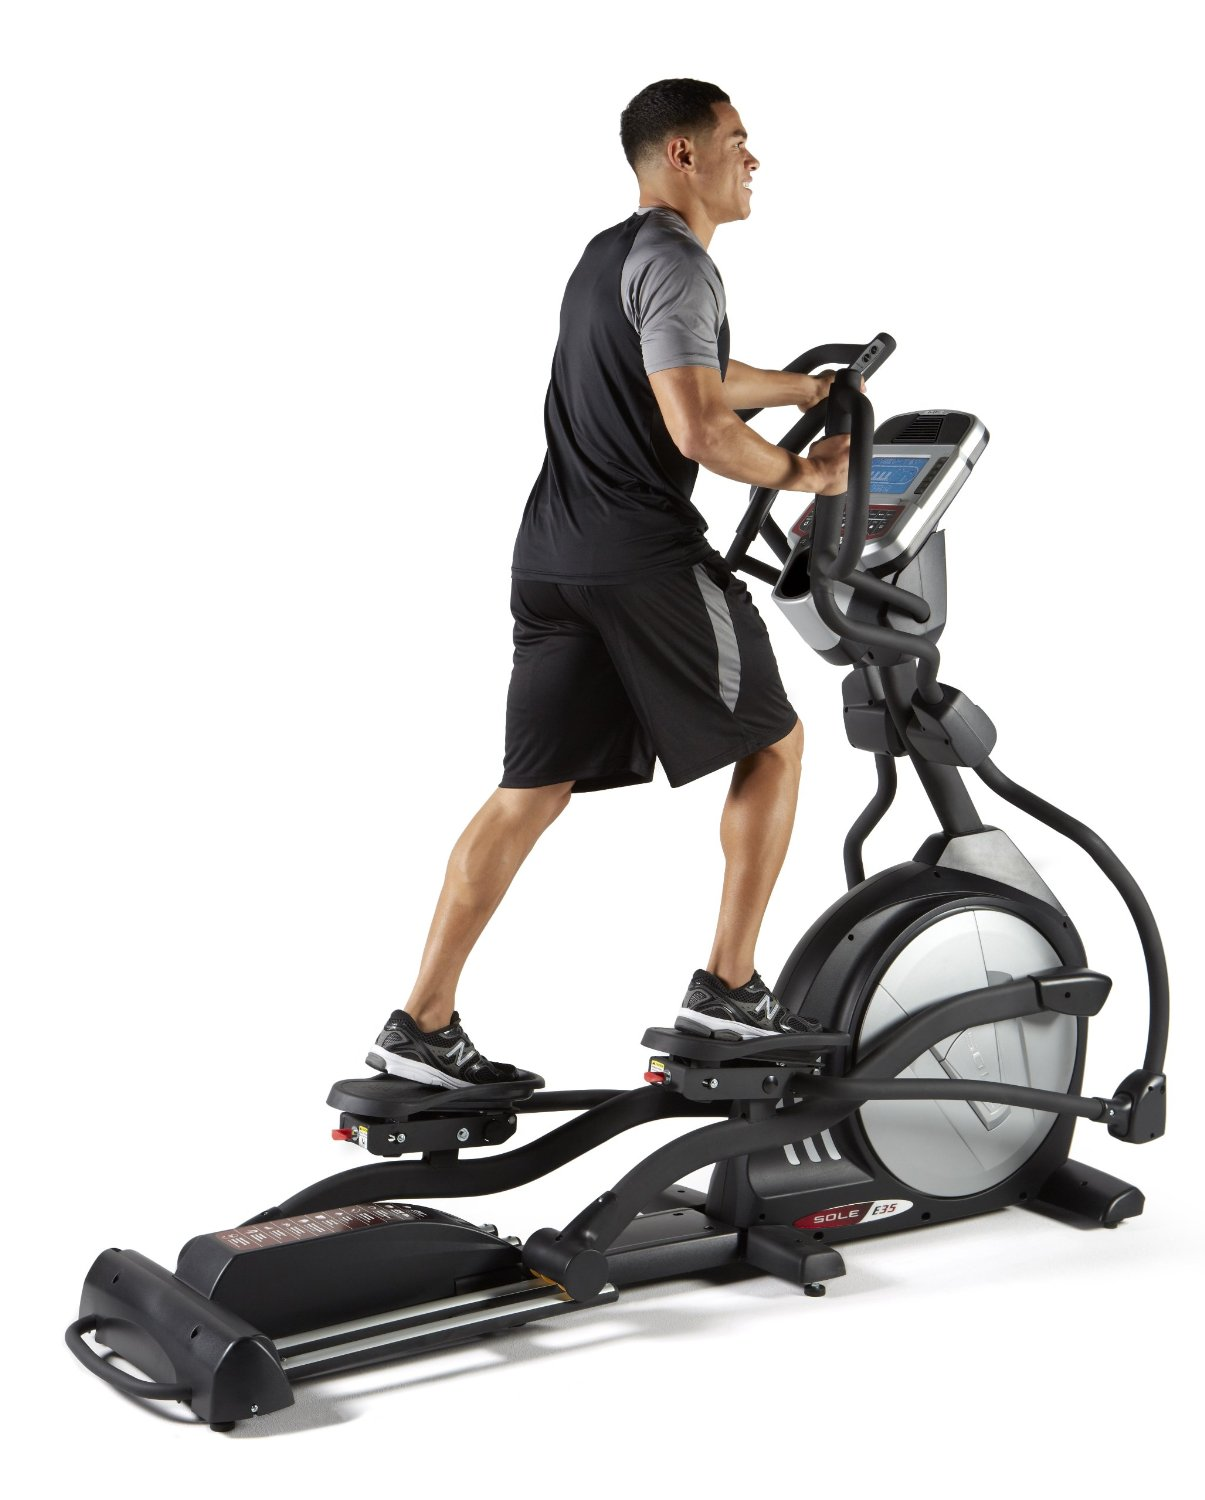 Best Elliptical Machines 2021 reviews